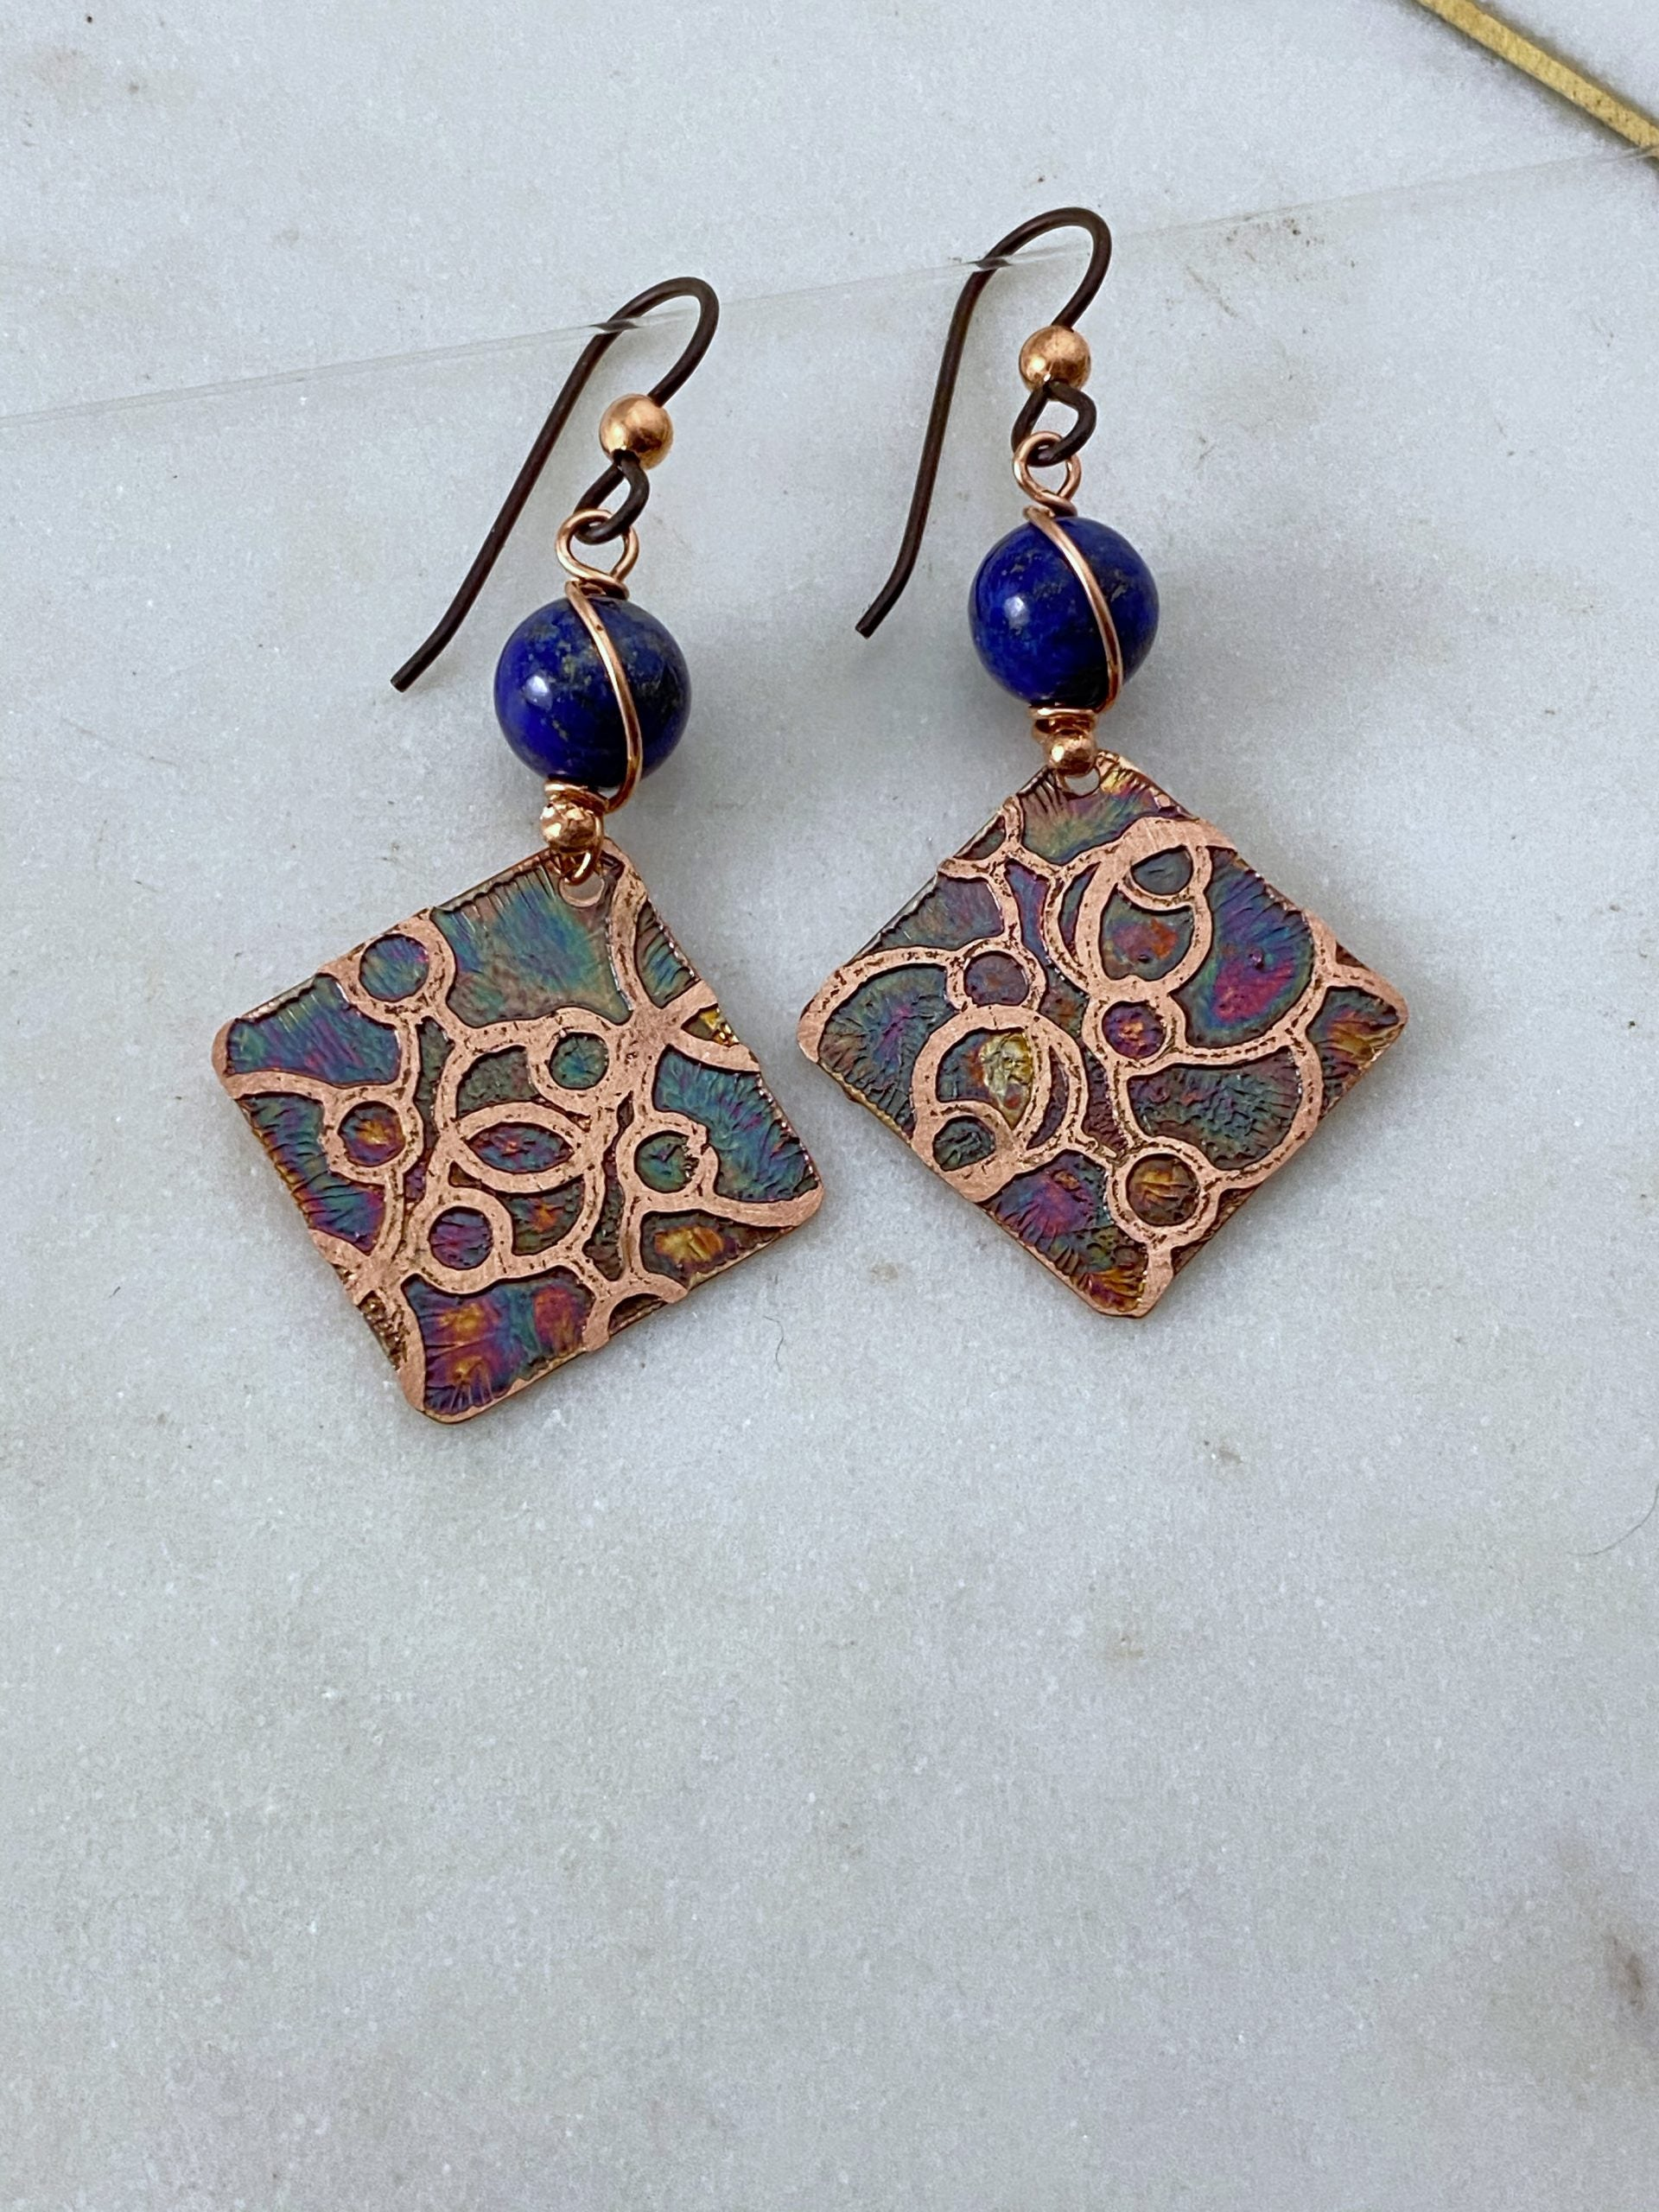 Acid etched copper open dot earrings with lapis